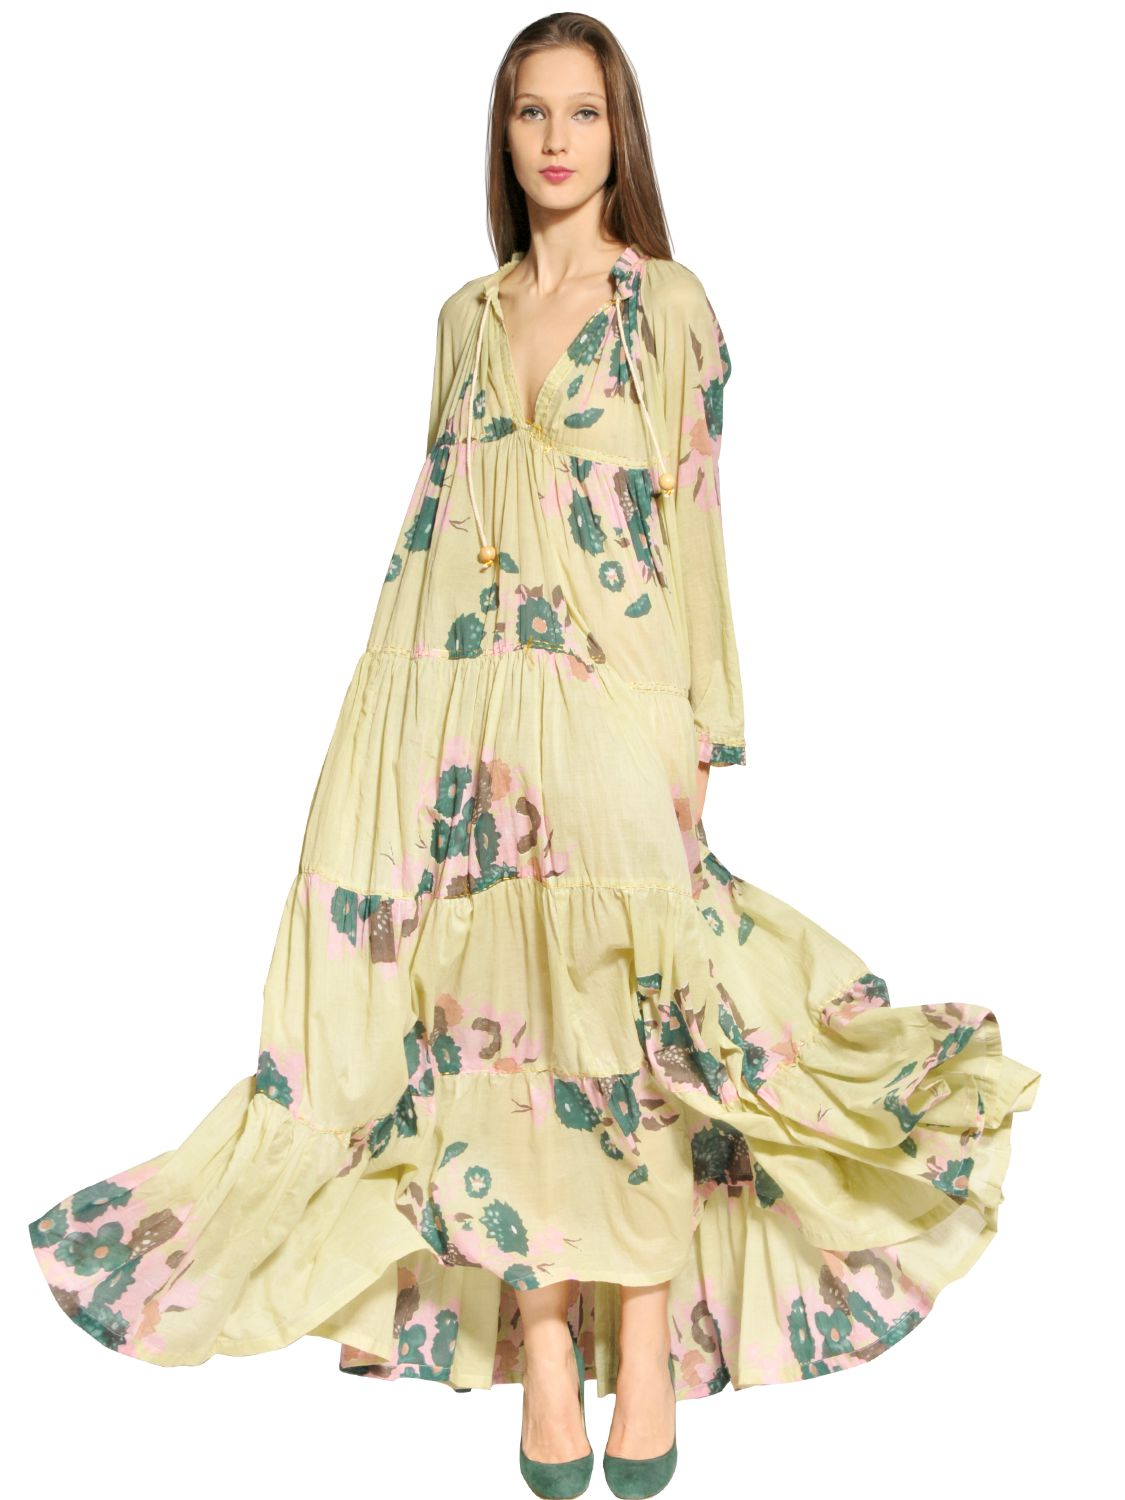 Yvonne s Cotton Poplin Floral Long Dress in Natural - Lyst